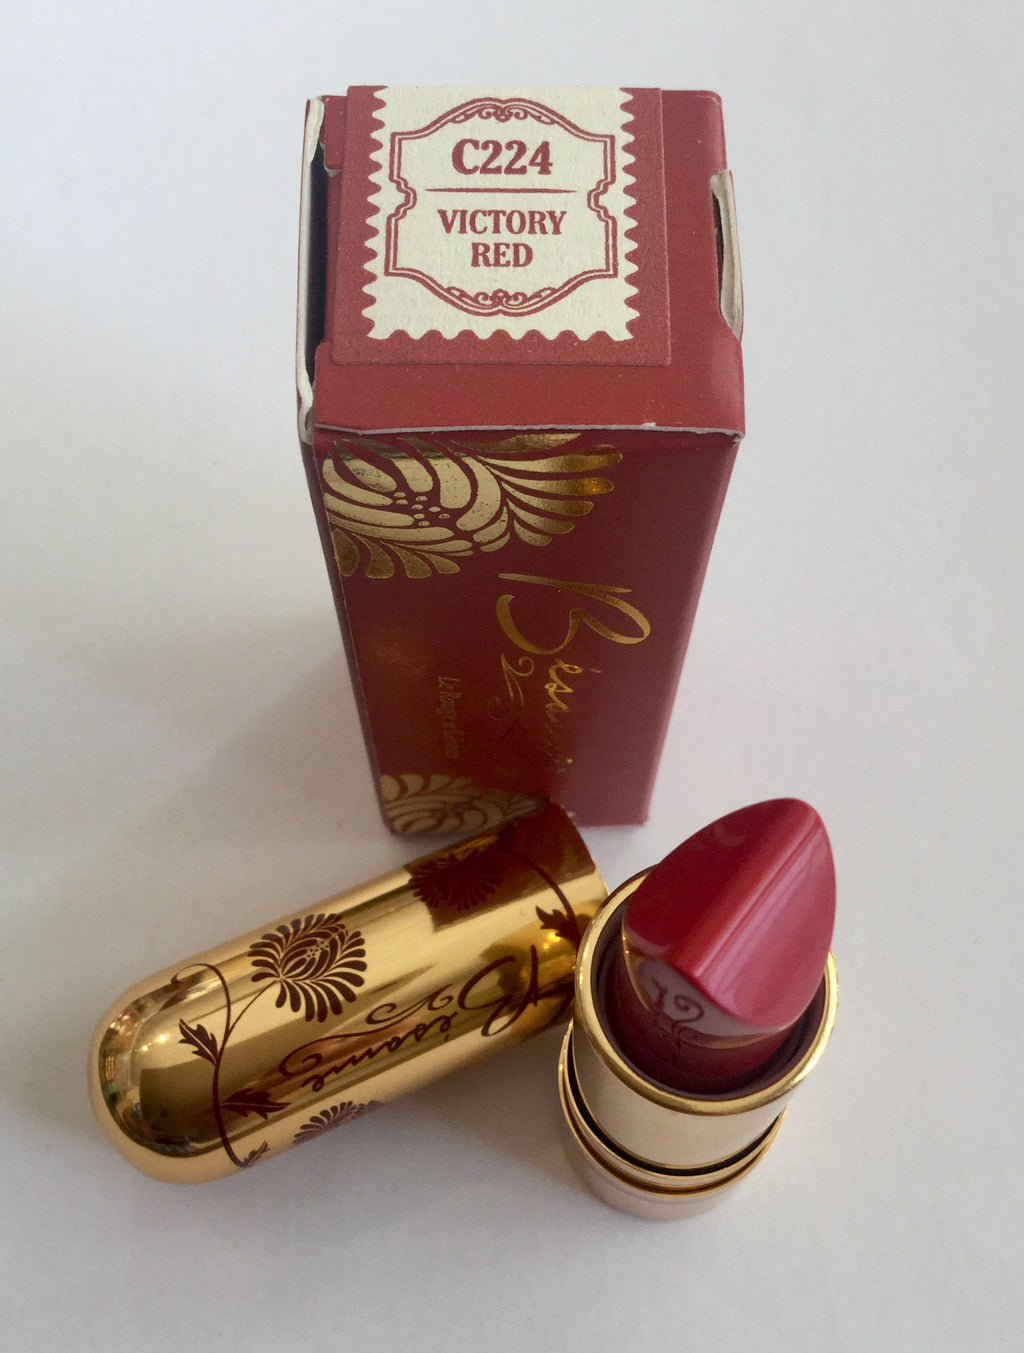 1941 Victory Red Lipstick